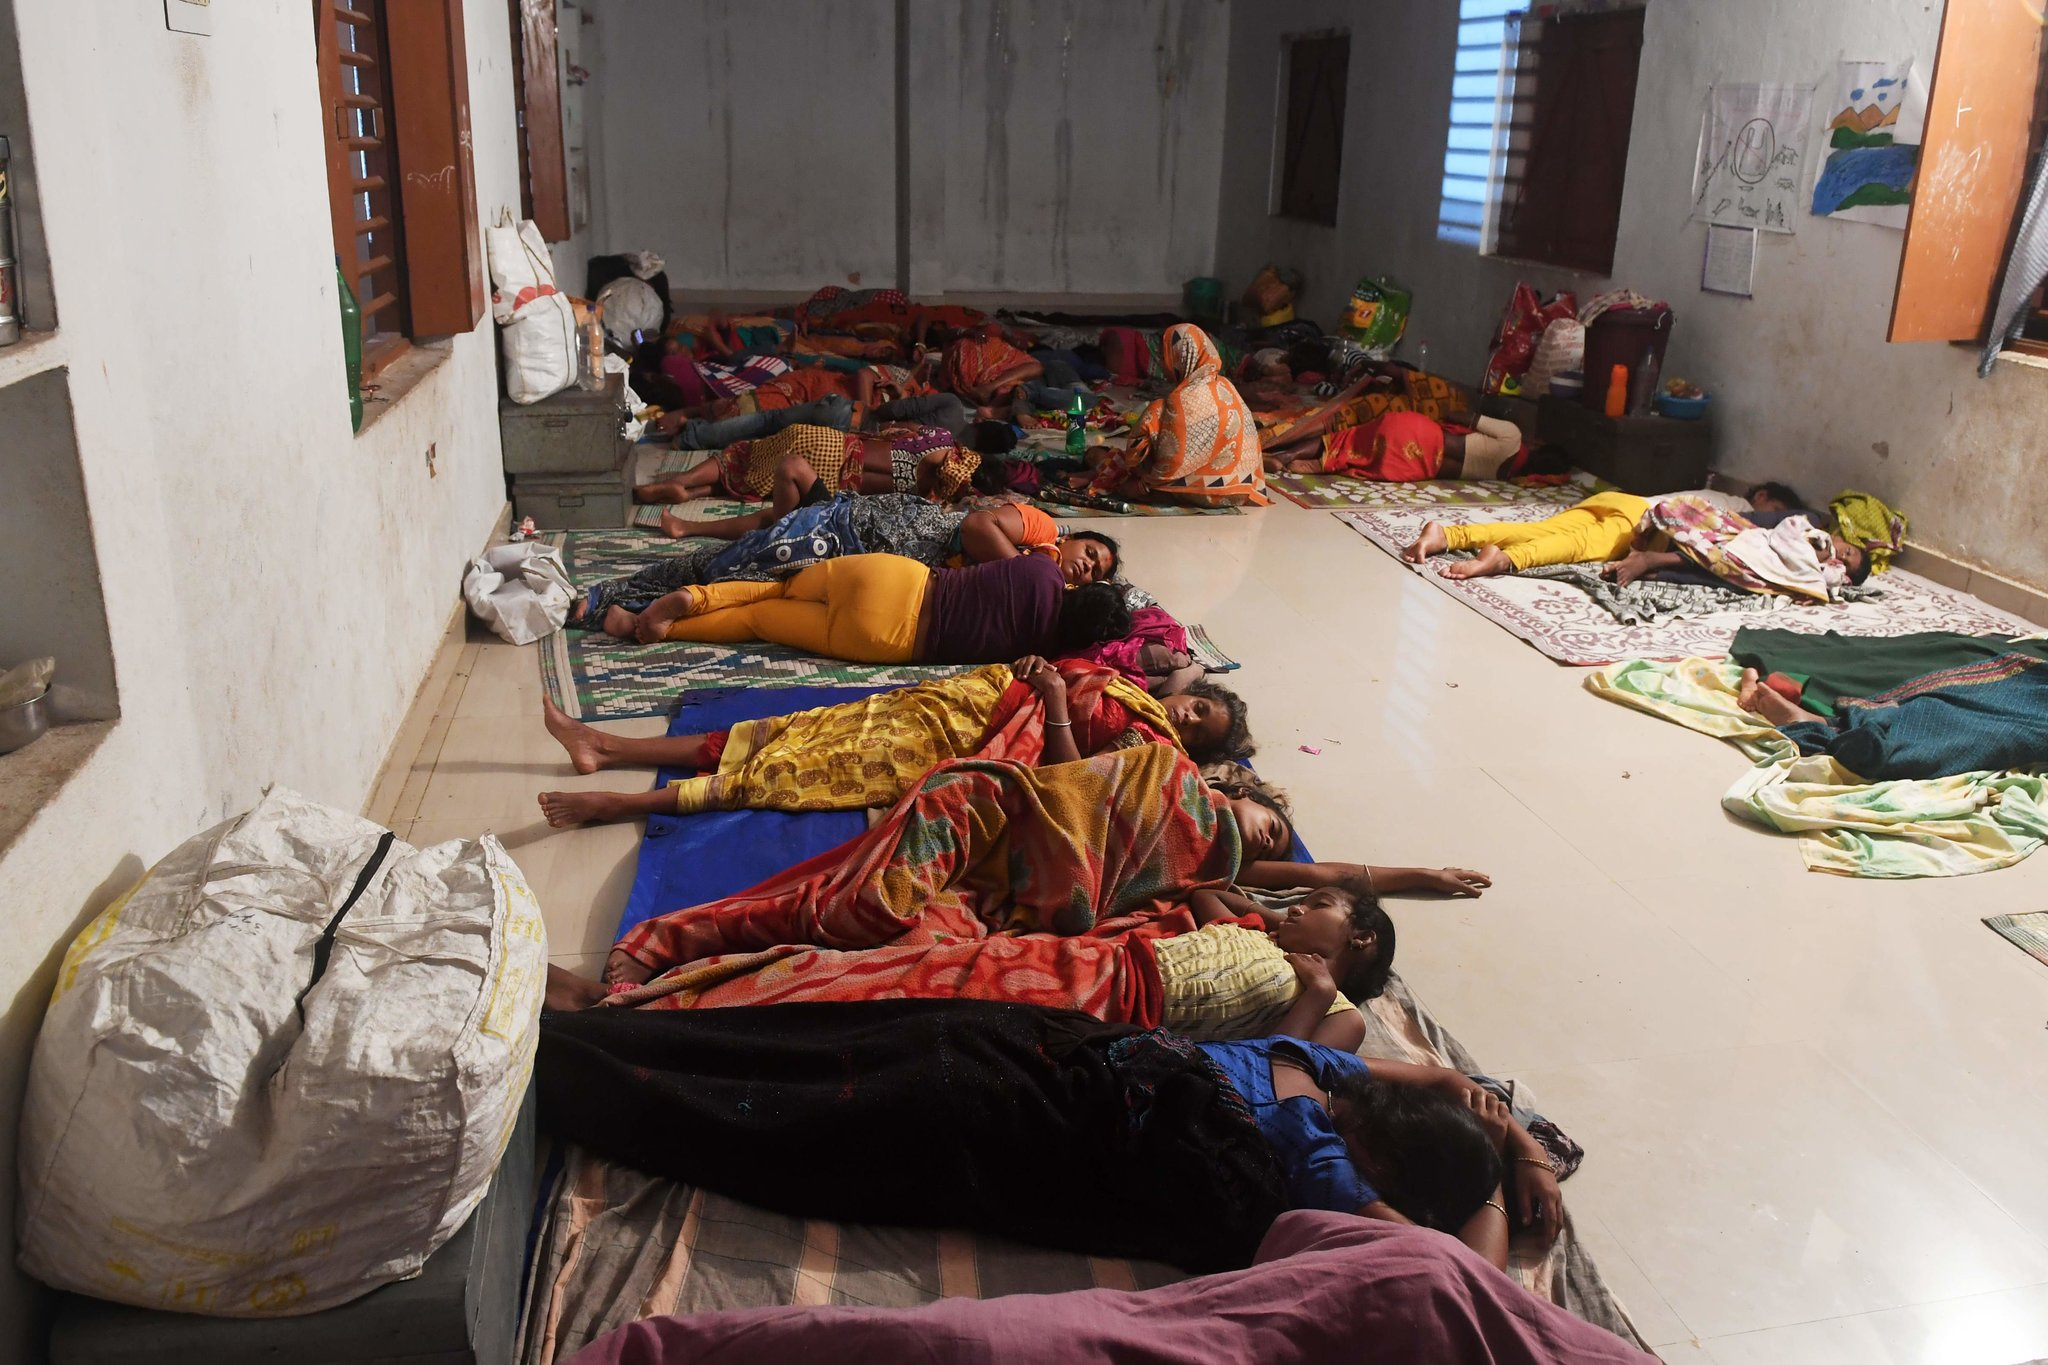 A cyclone relief shelter in Puri on Friday. Credit Dibyangshu Sarkar/Agence France-Presse — Getty Images